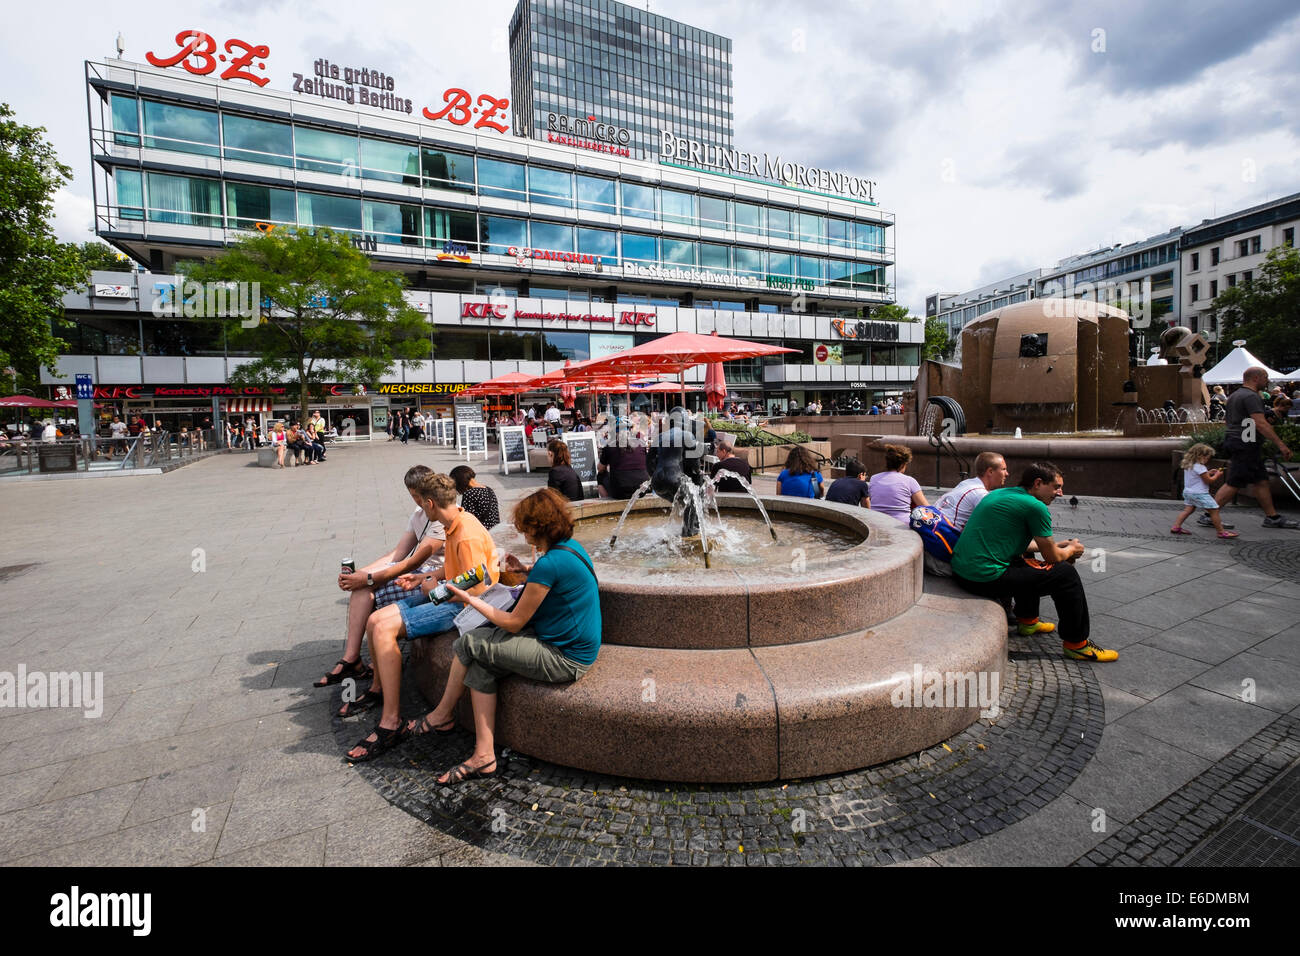 Fountain in square beside Europa Center in Charlottenurg Berlin Germany - Stock Image